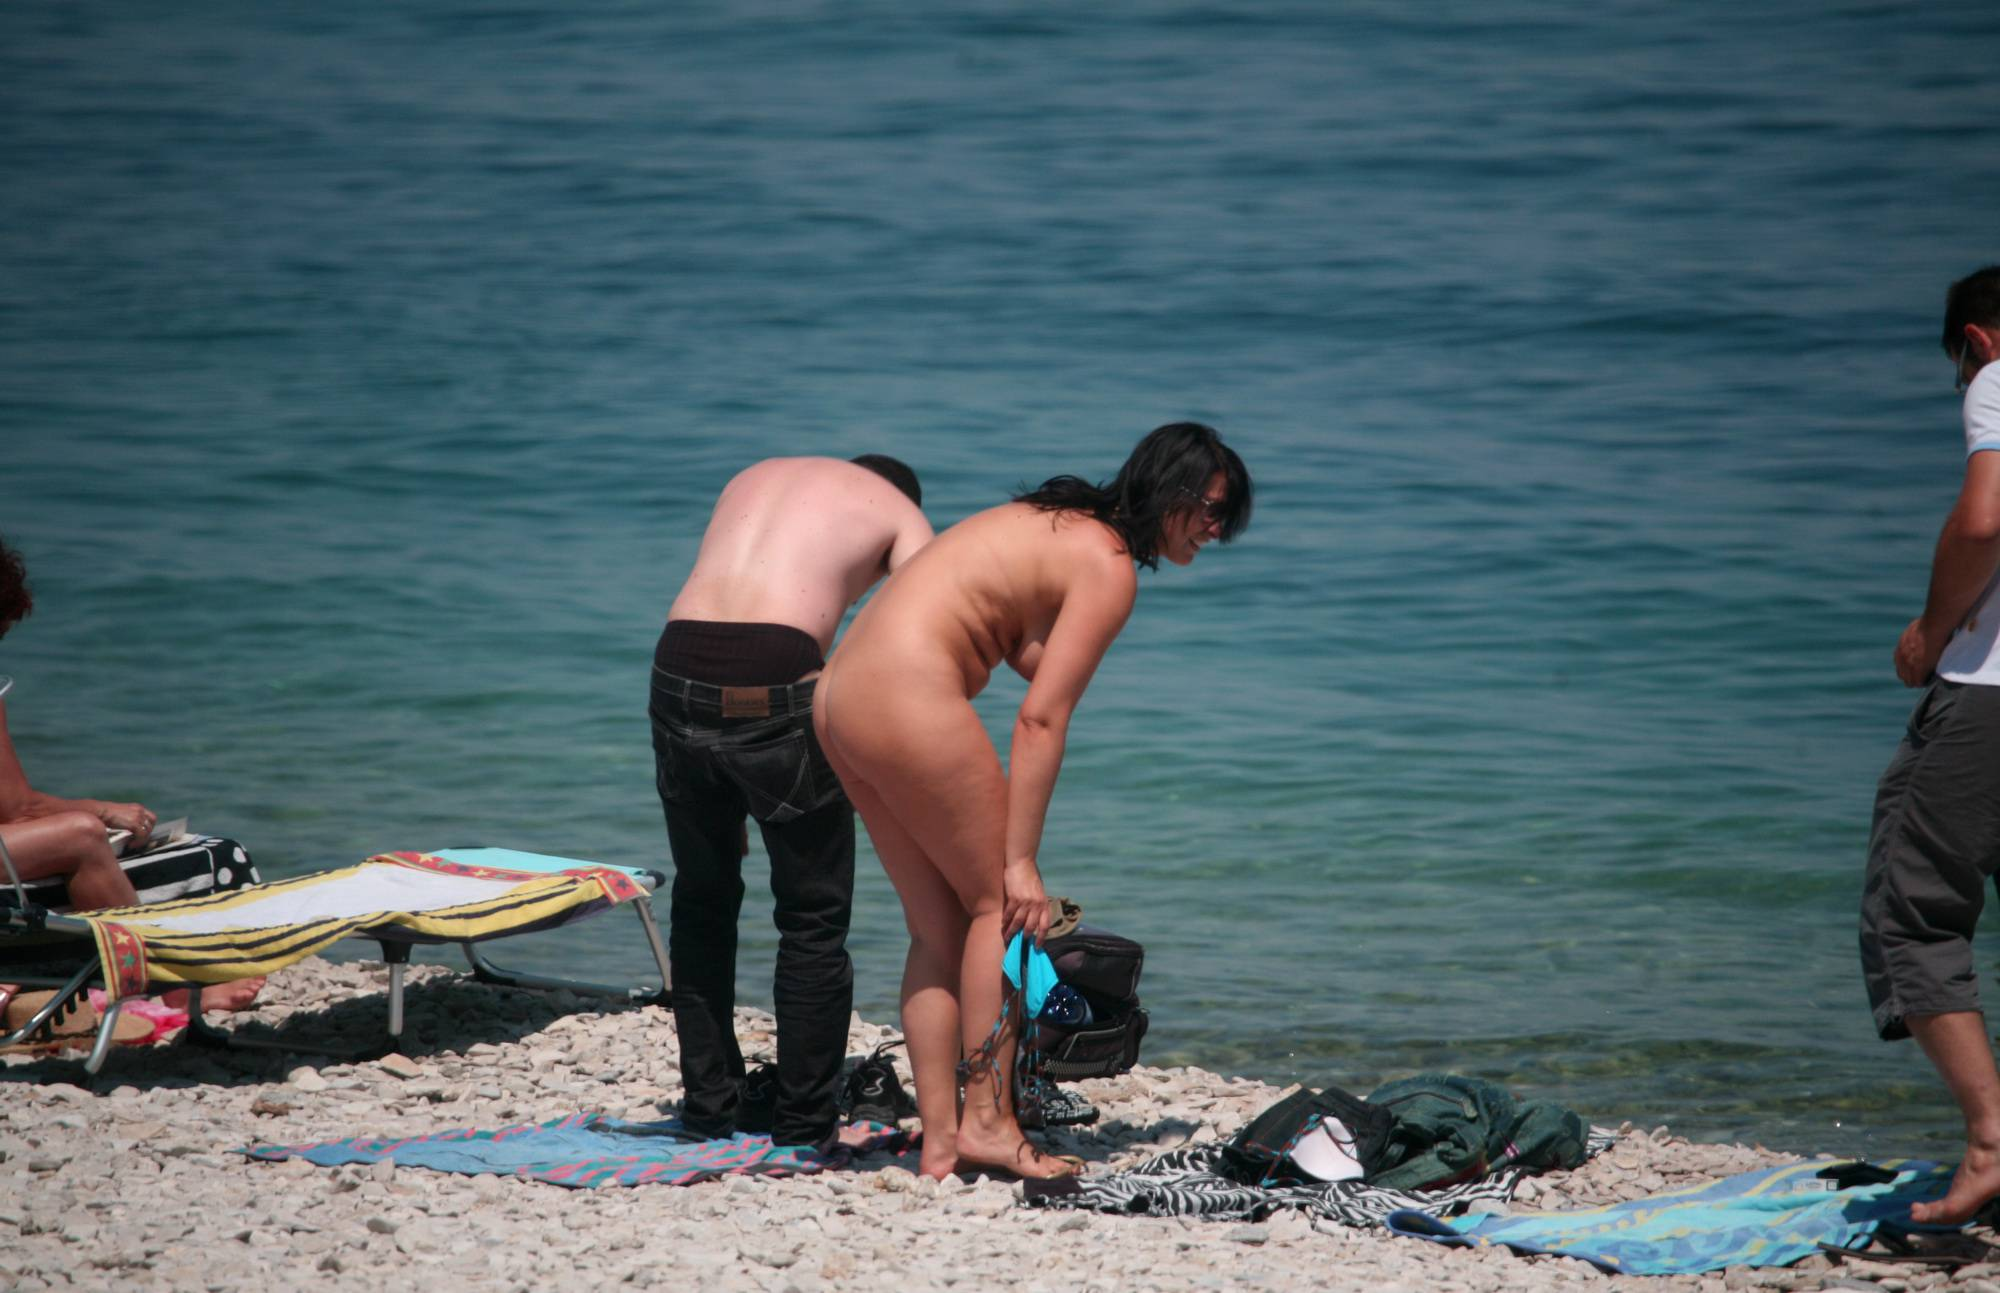 Pure Nudism Pics-Friends Came on a Beach - 2